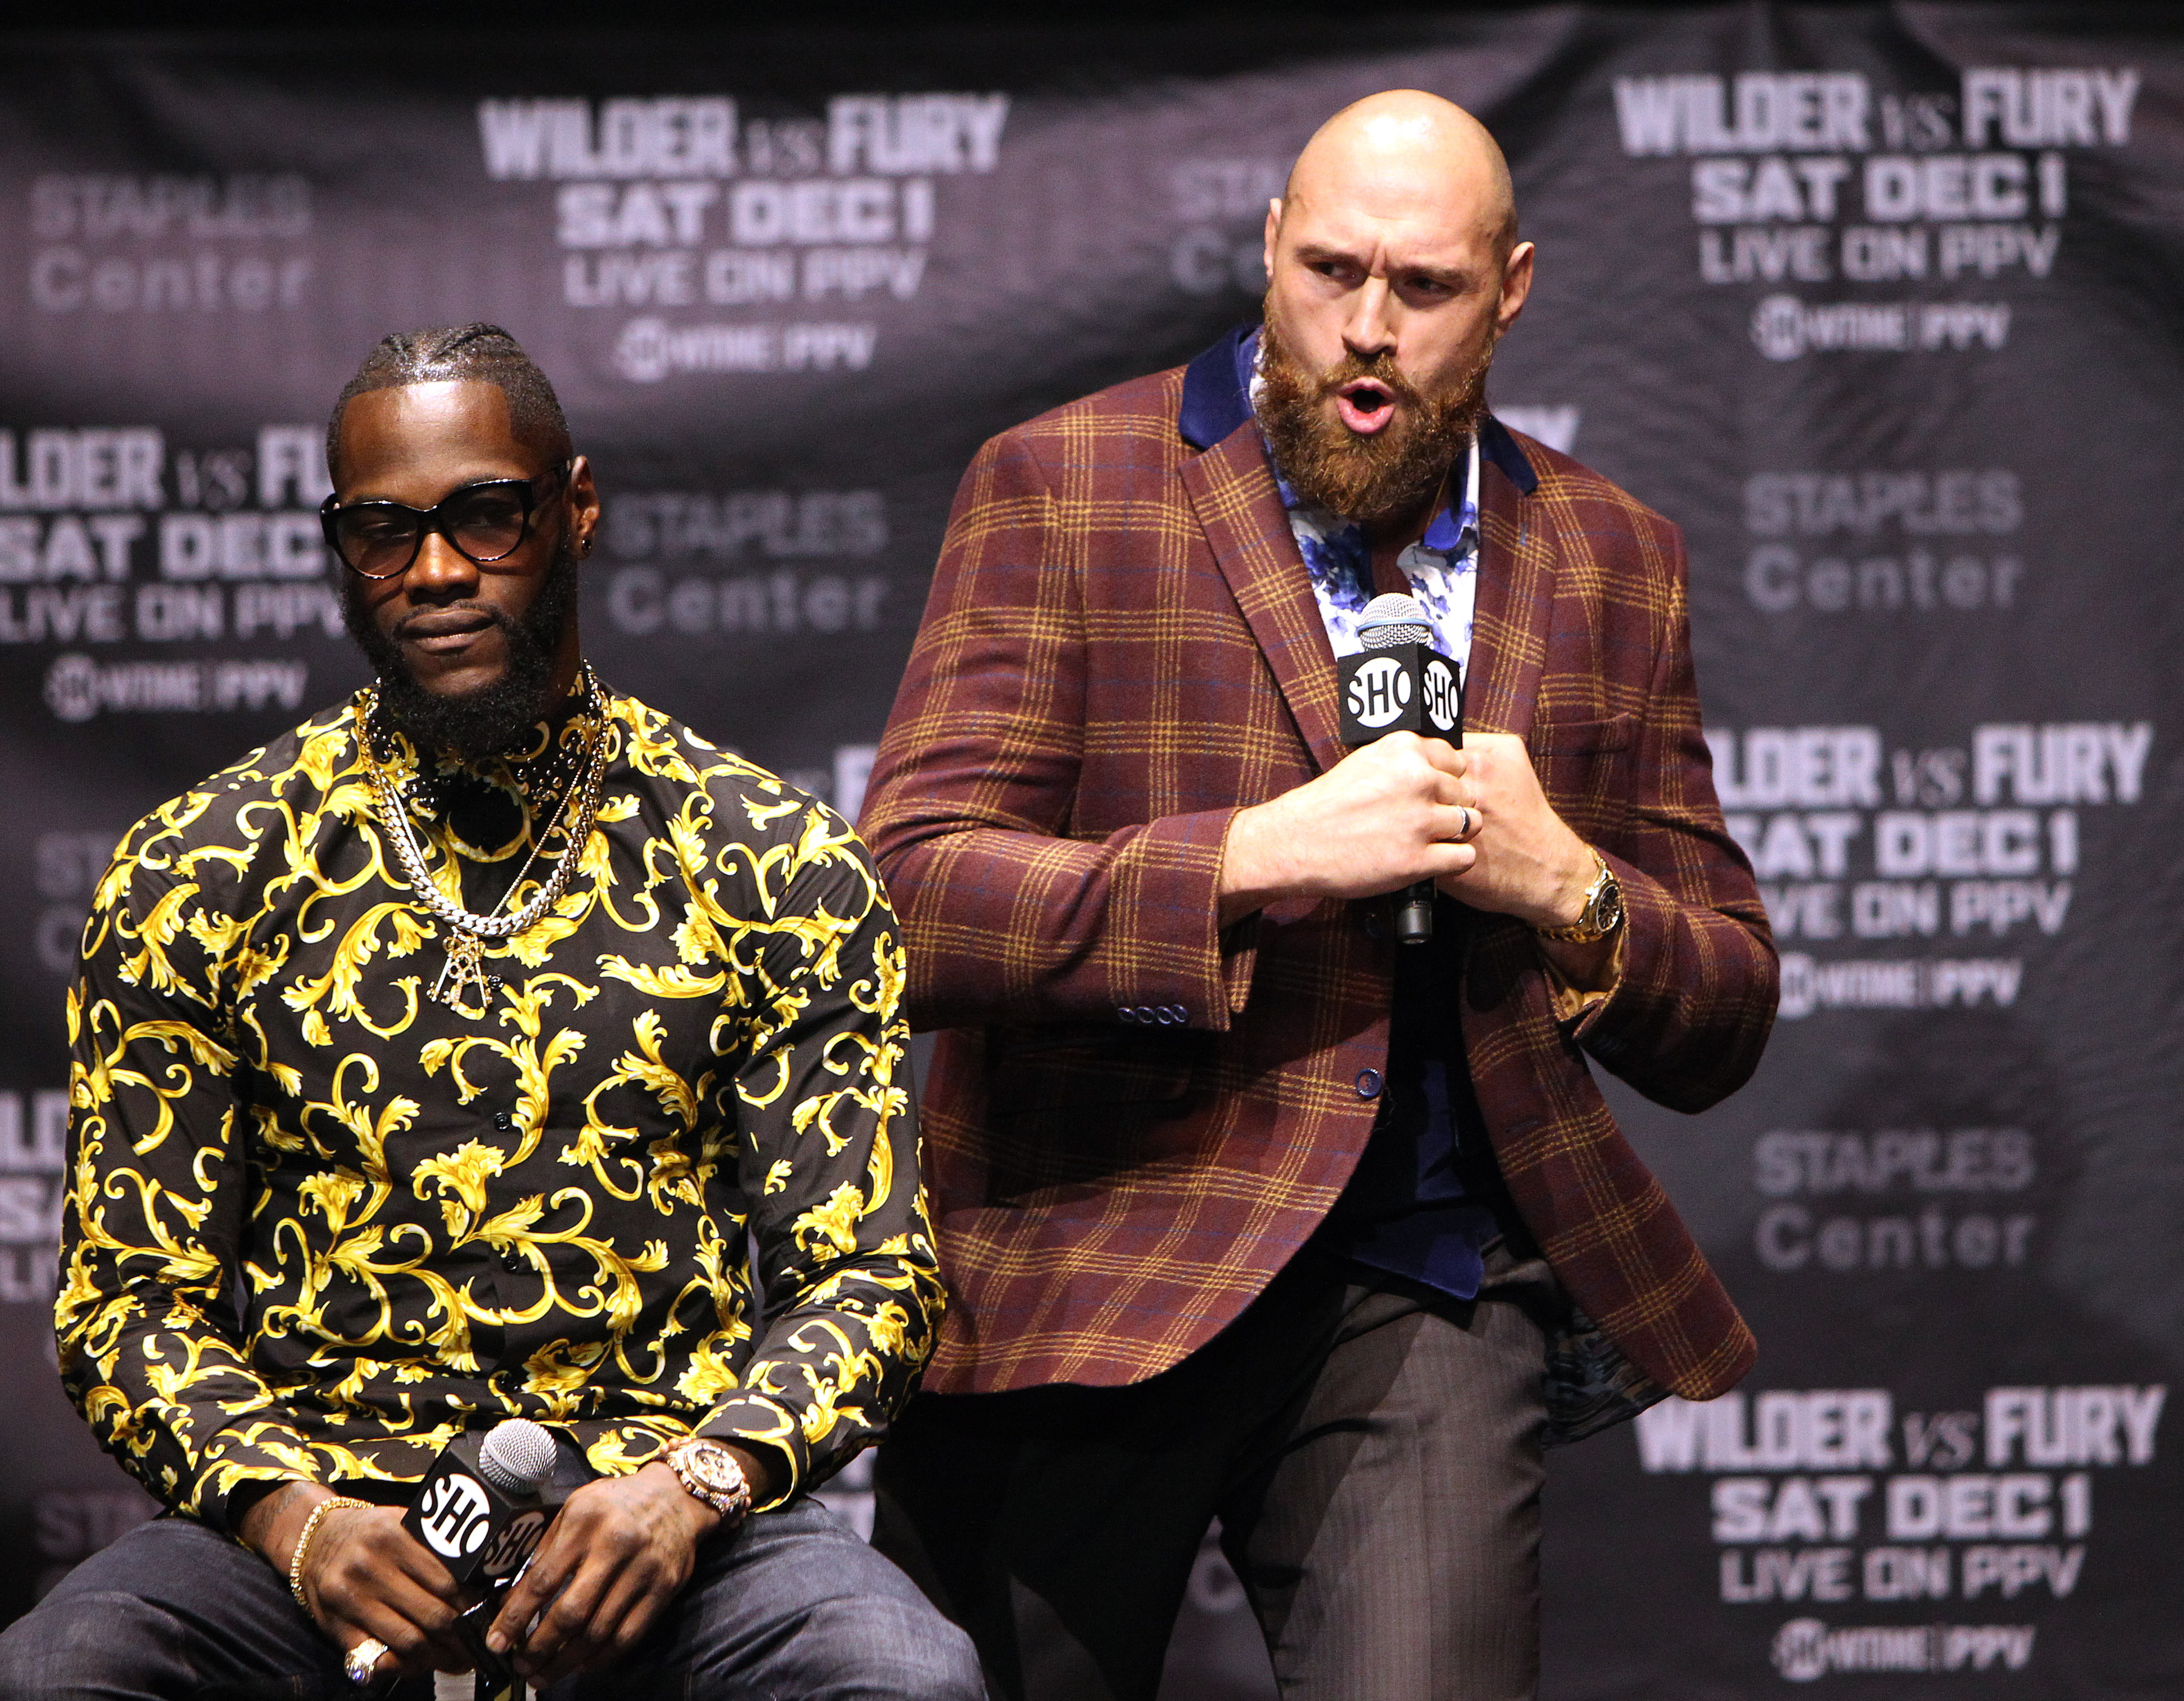 Wilder and Fury have swapped insults at several press conferences. Image: PA Images